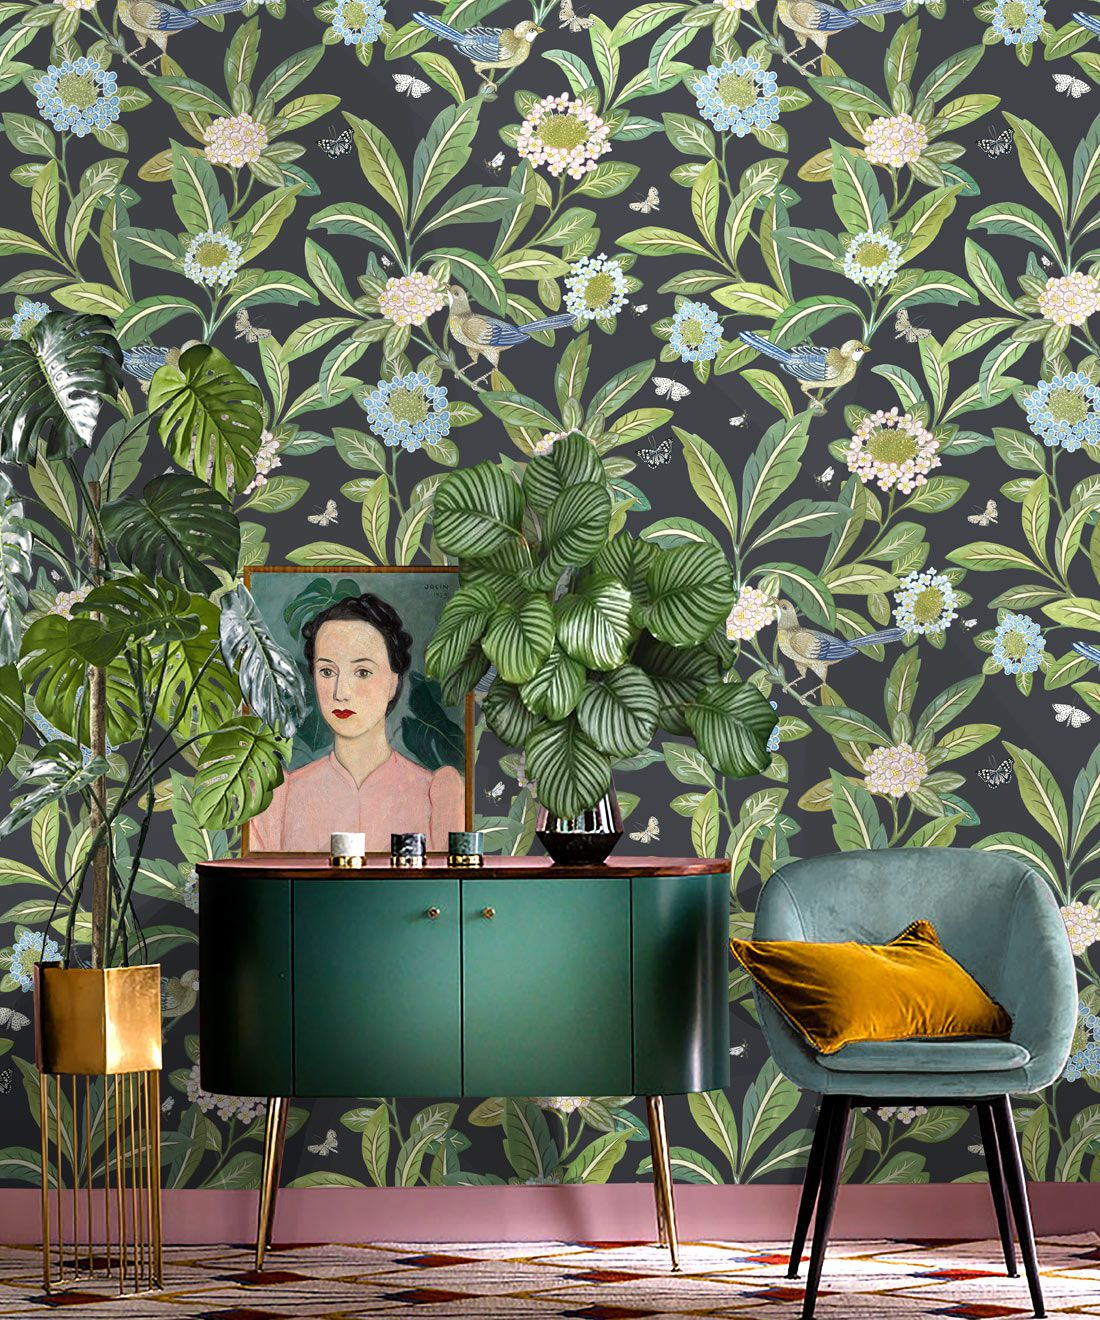 Summer Garden Wallpaper • Charcoal Wallpaper • Floral Wallpaper Insitu with green cabinet and blue chair